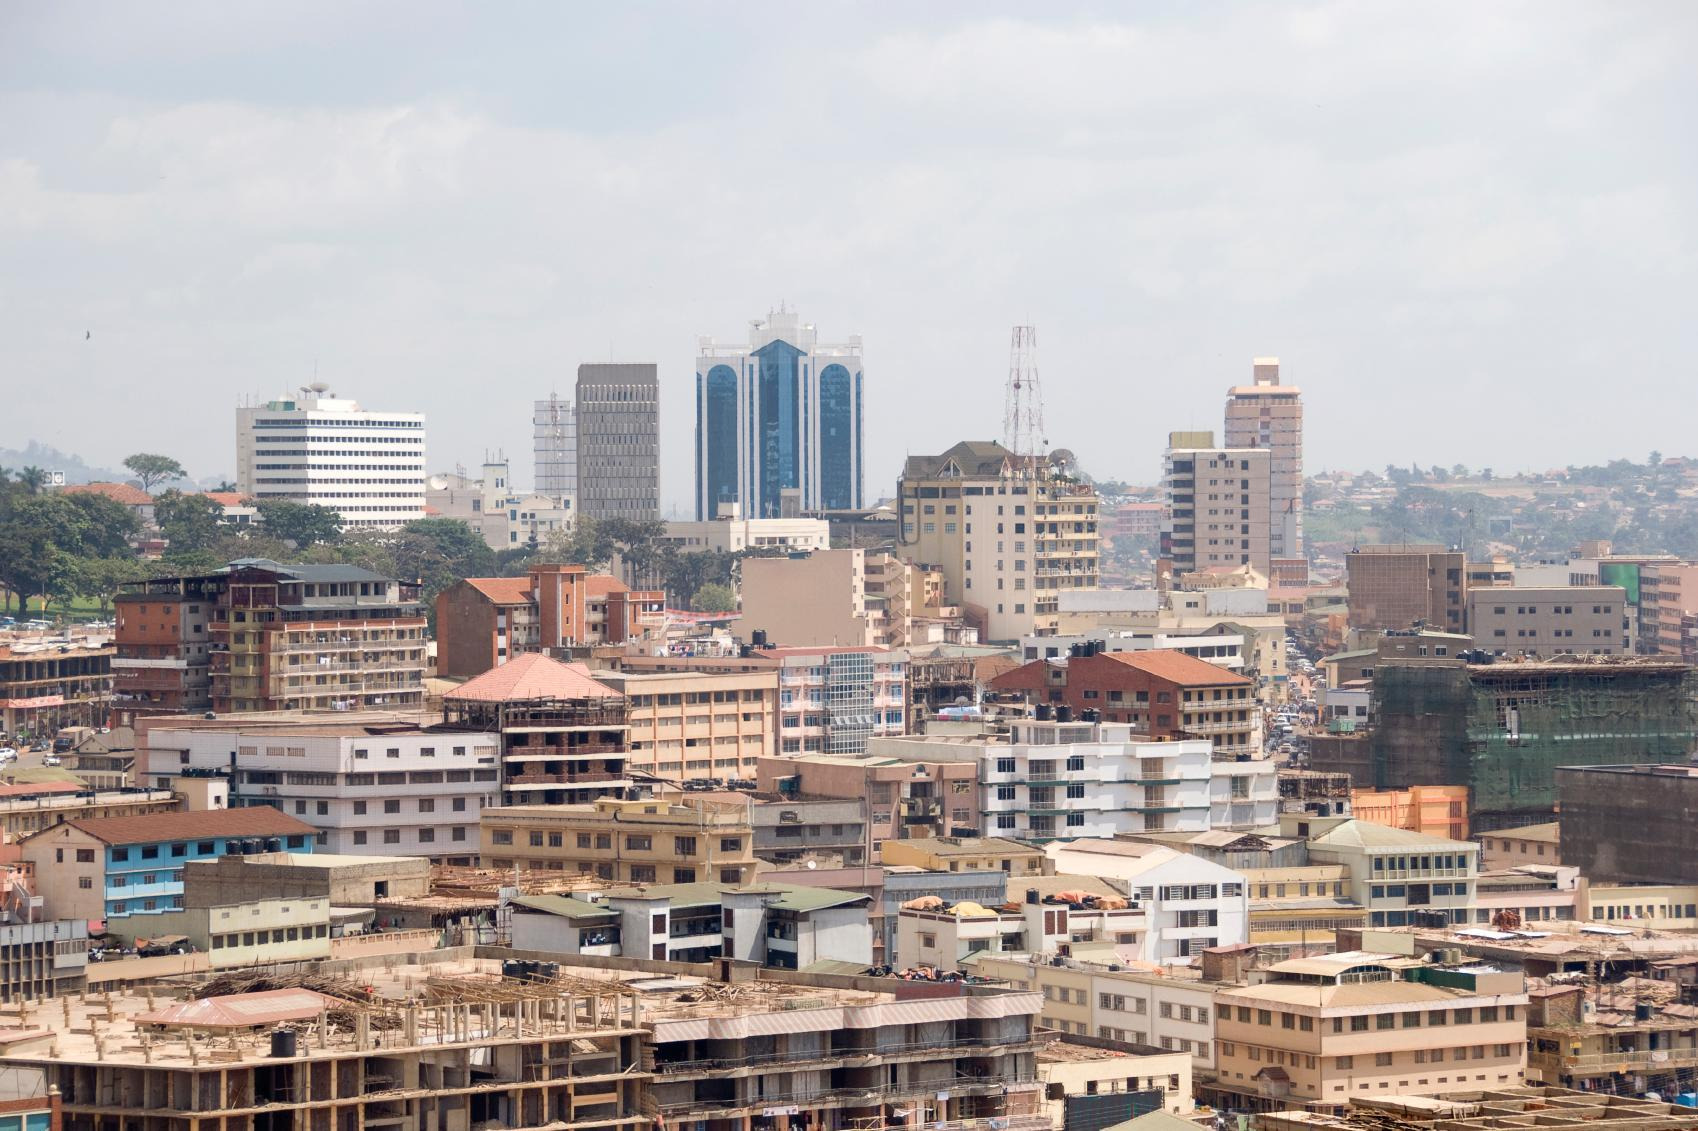 How to Spend 1 Day in Kampala